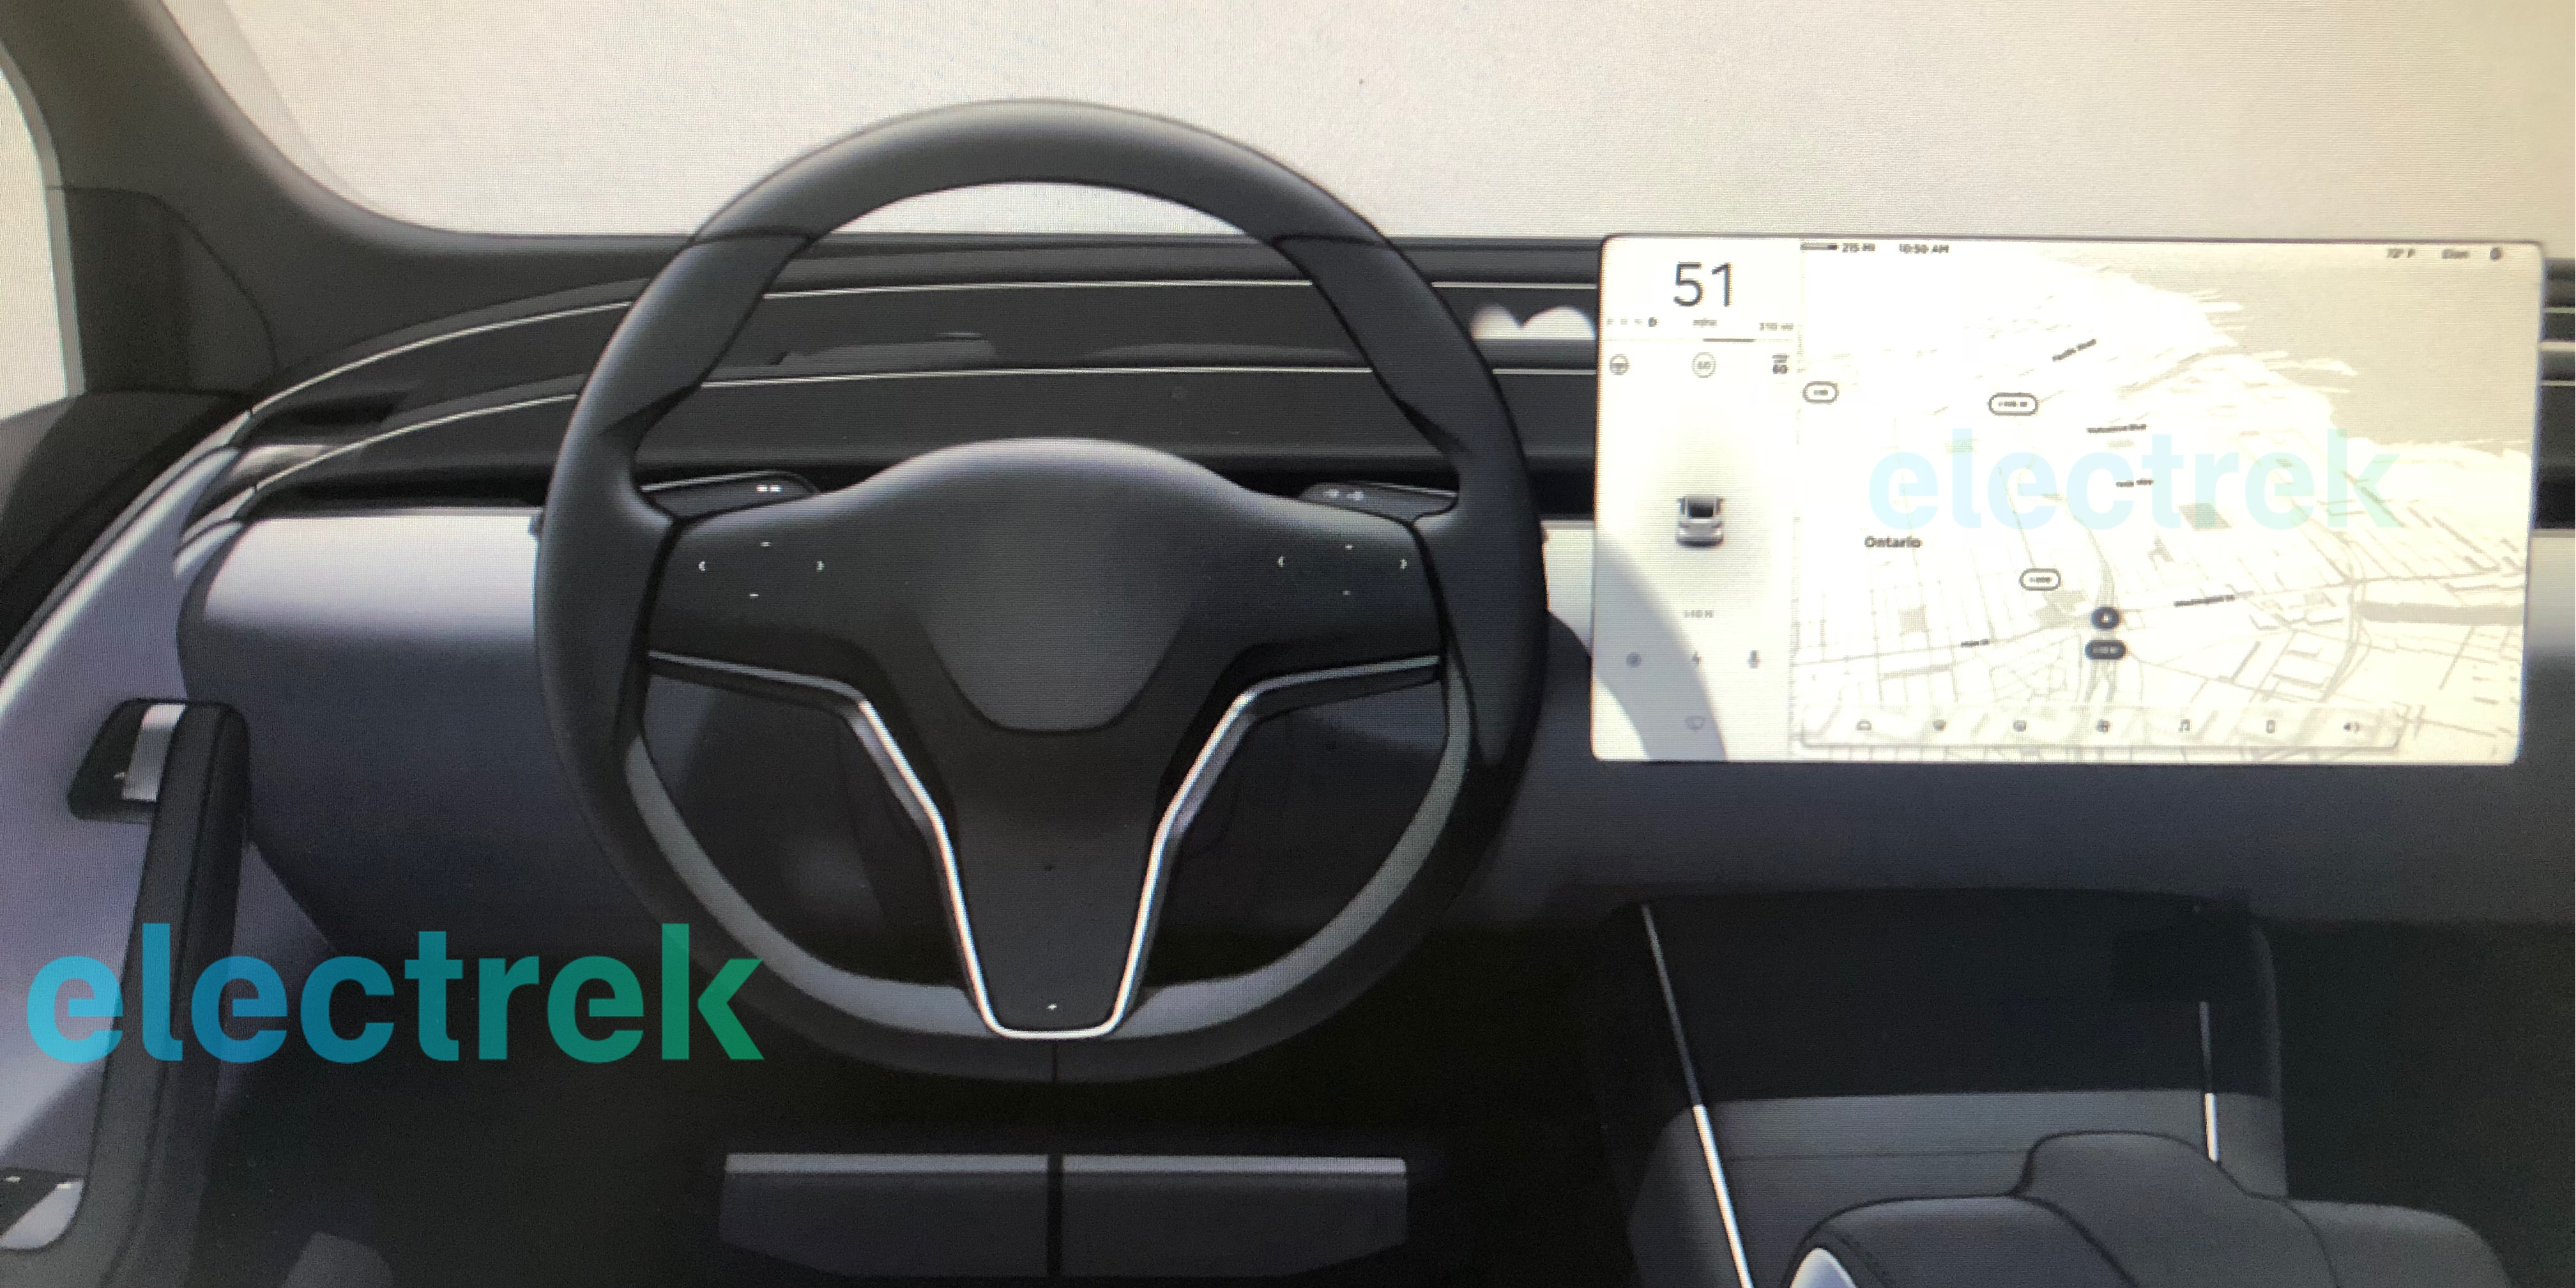 Exclusive First Look At Tesla Model S And Model X Interior Refresh Going Spartan Like Model 3 Electrek